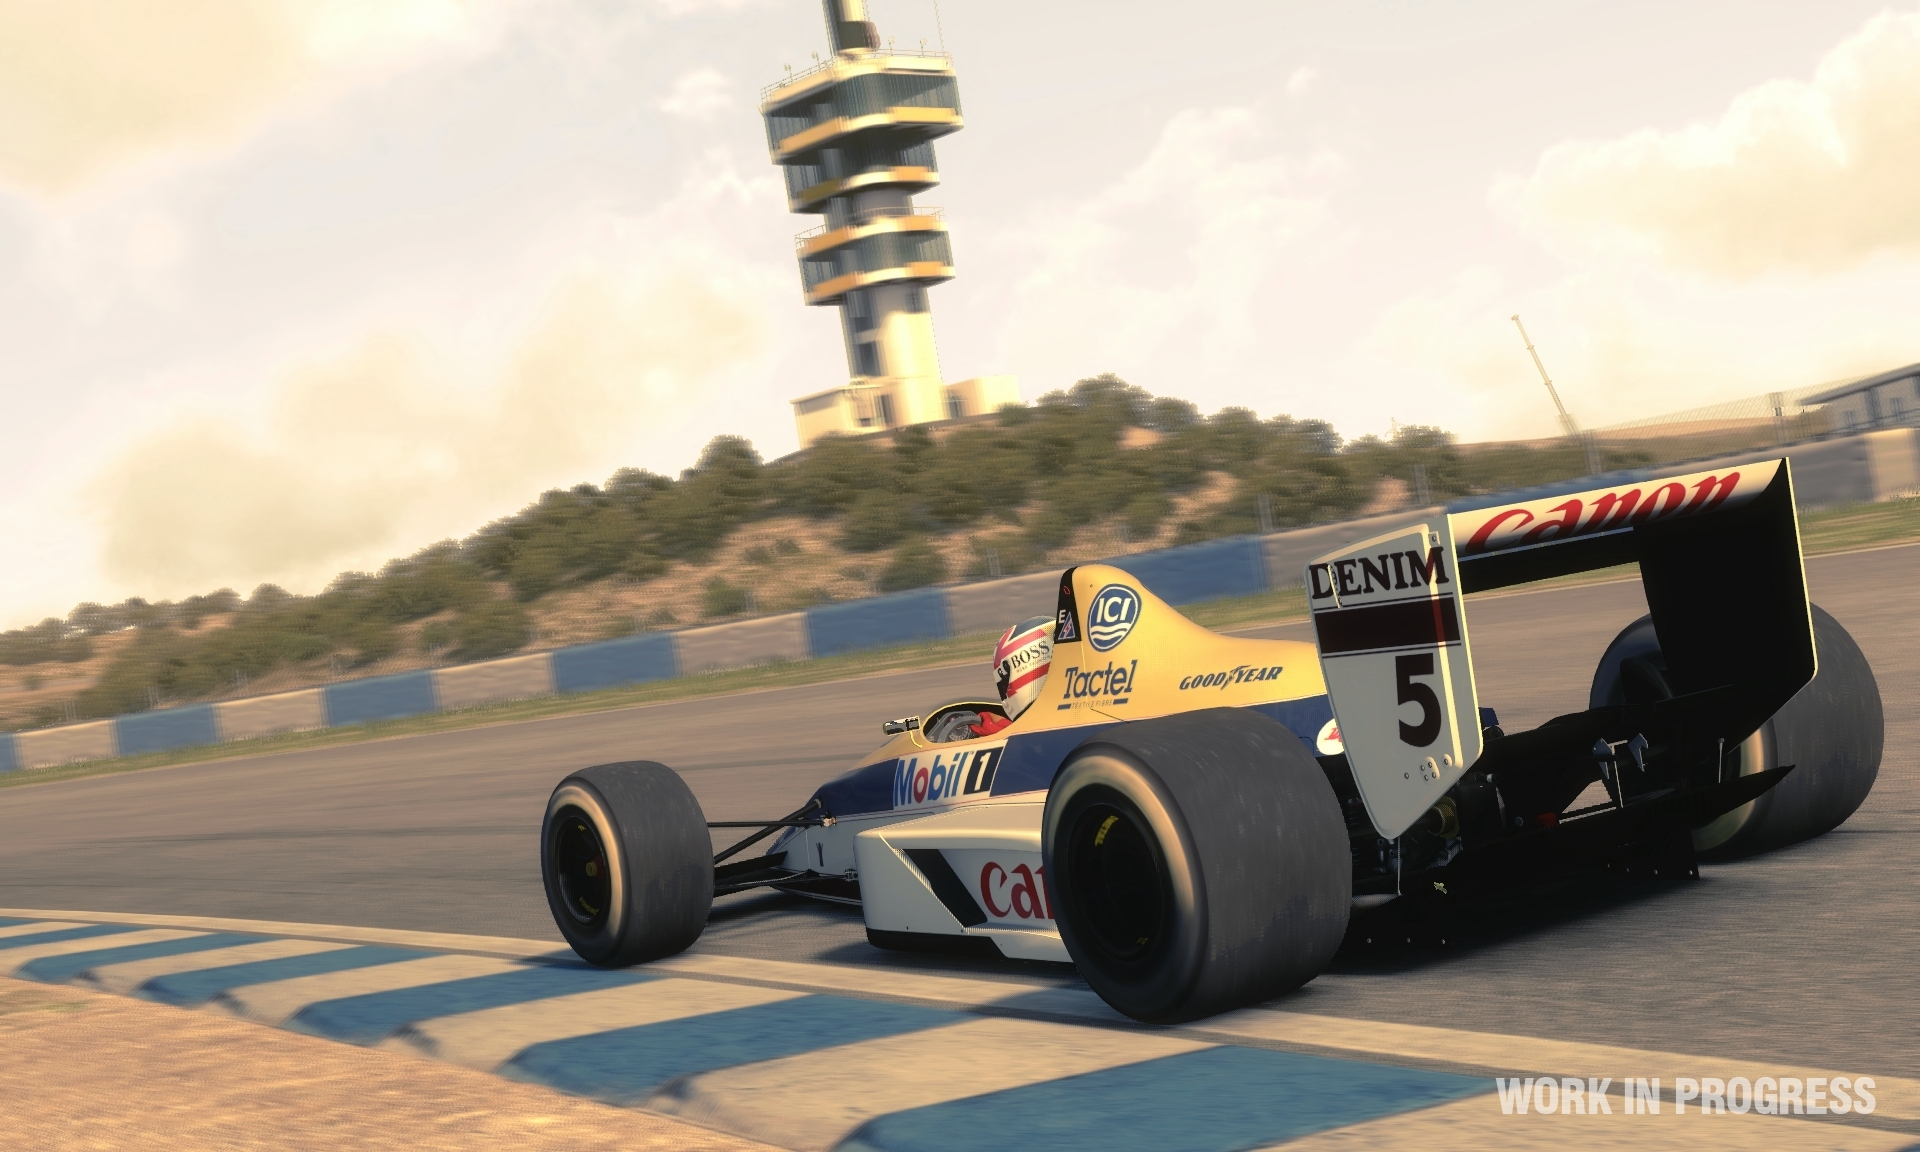 f1-2013-1988-williams-001-wip